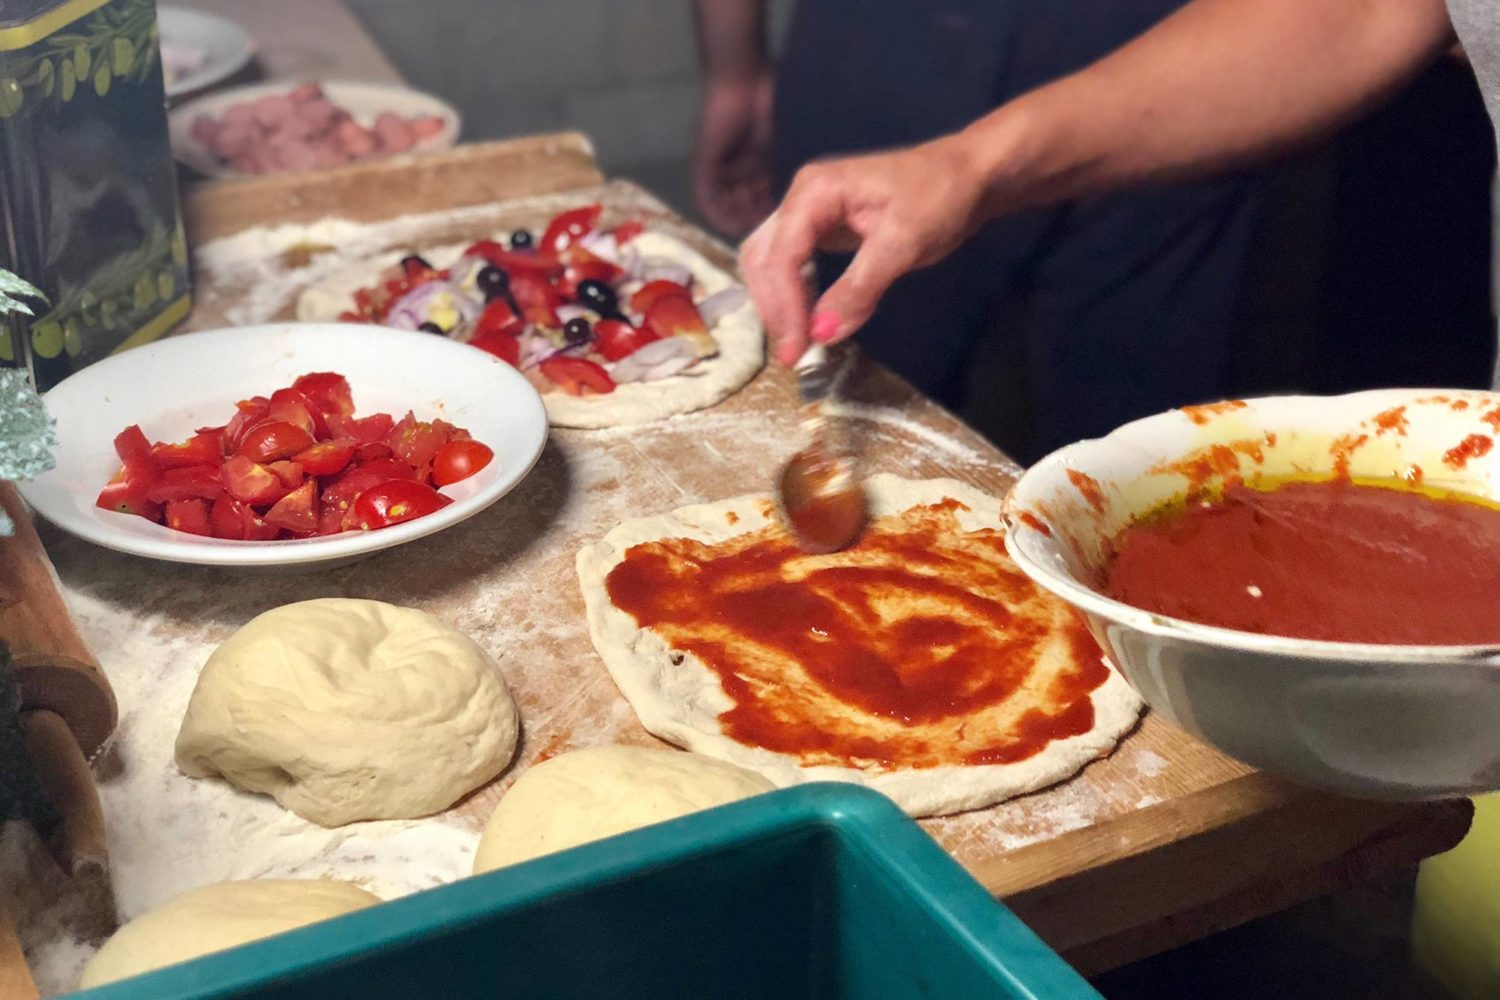 Come preparare una pizza cooking class